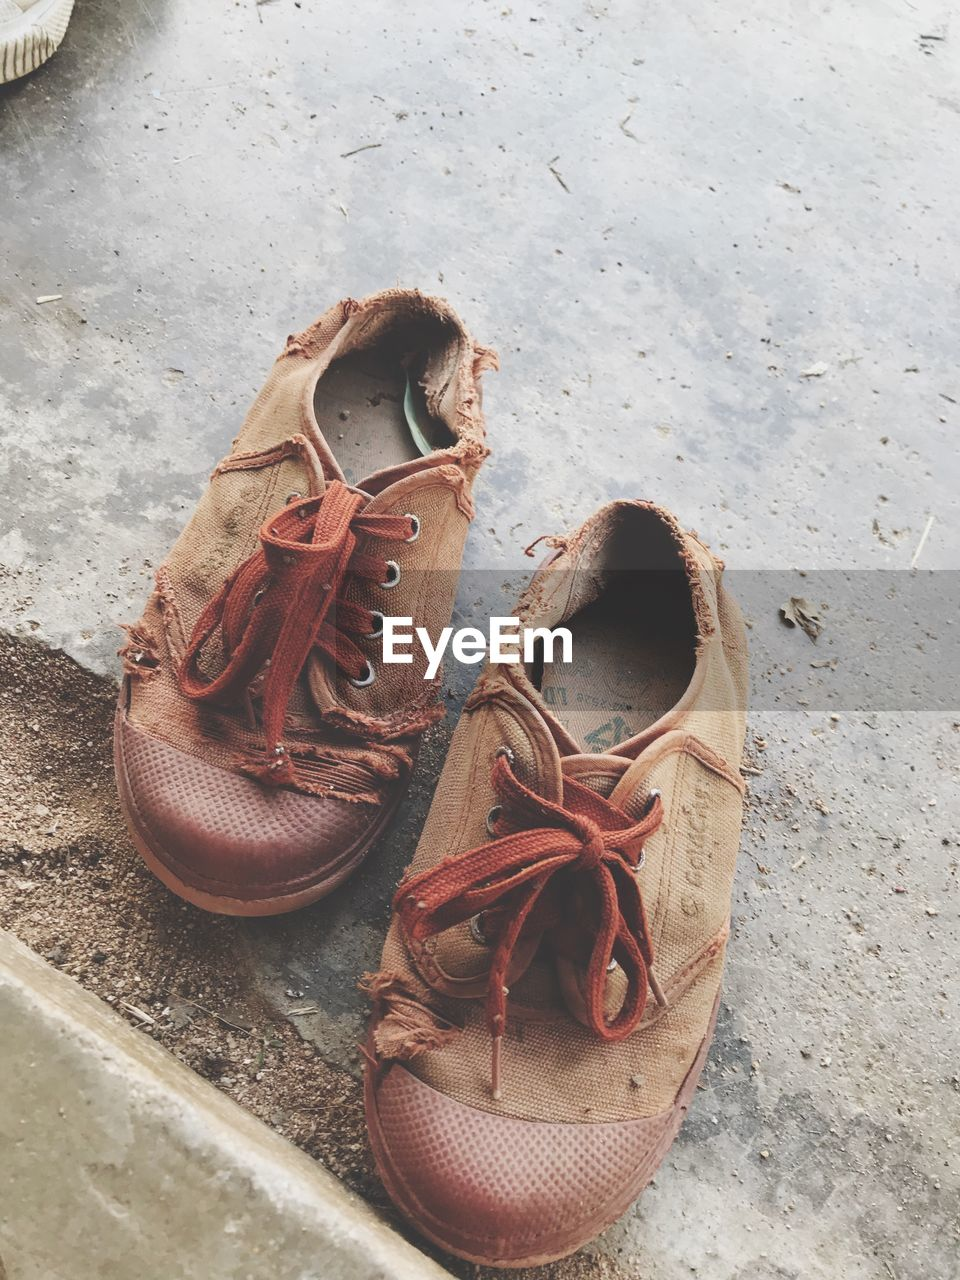 High angle view of weathered shoes